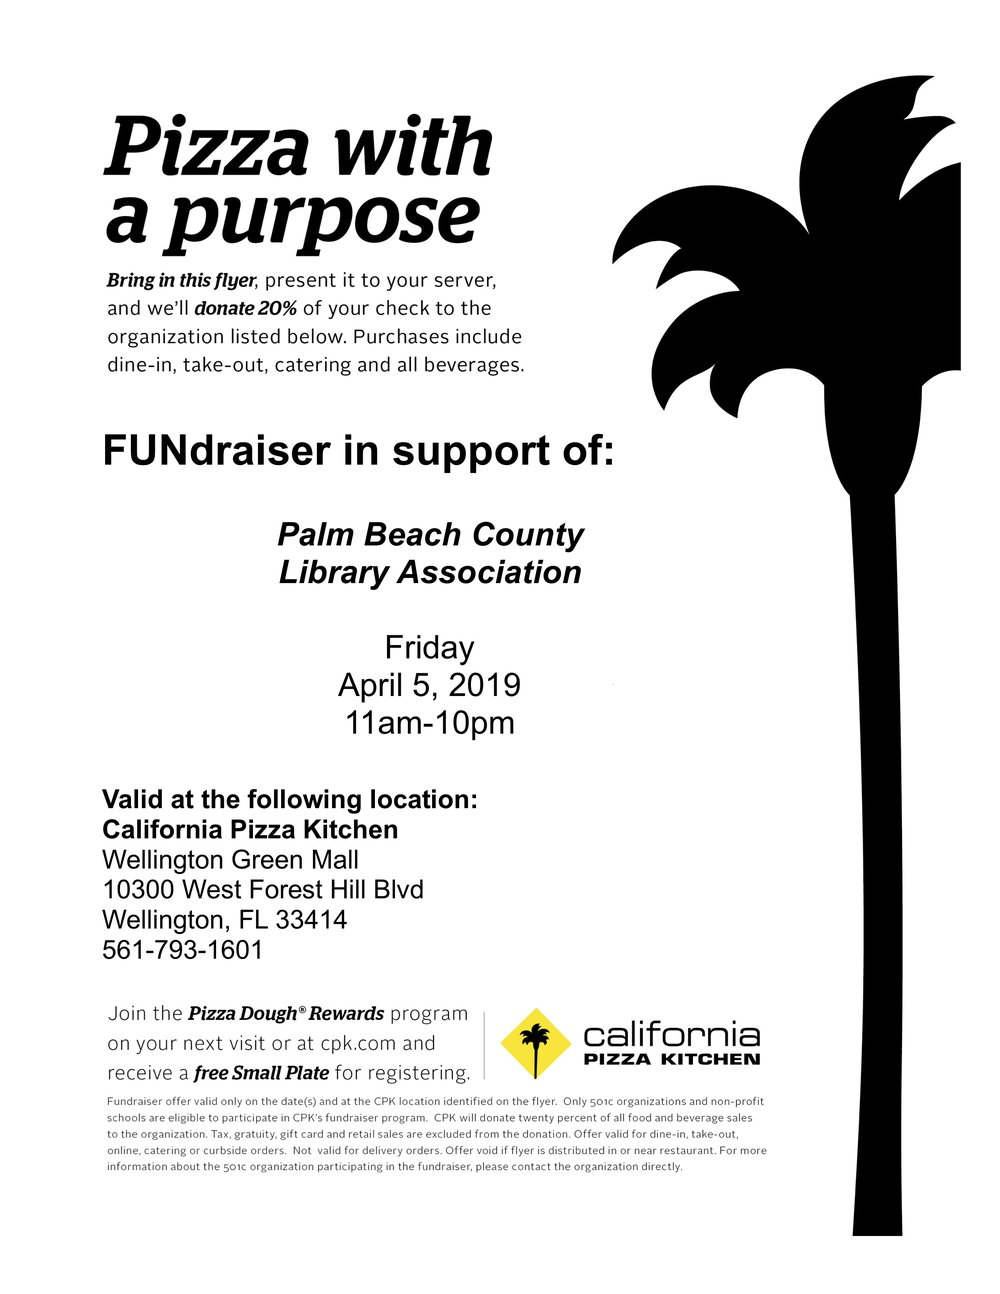 CPK-PBCLA-flyer-April-5-2019.jpg